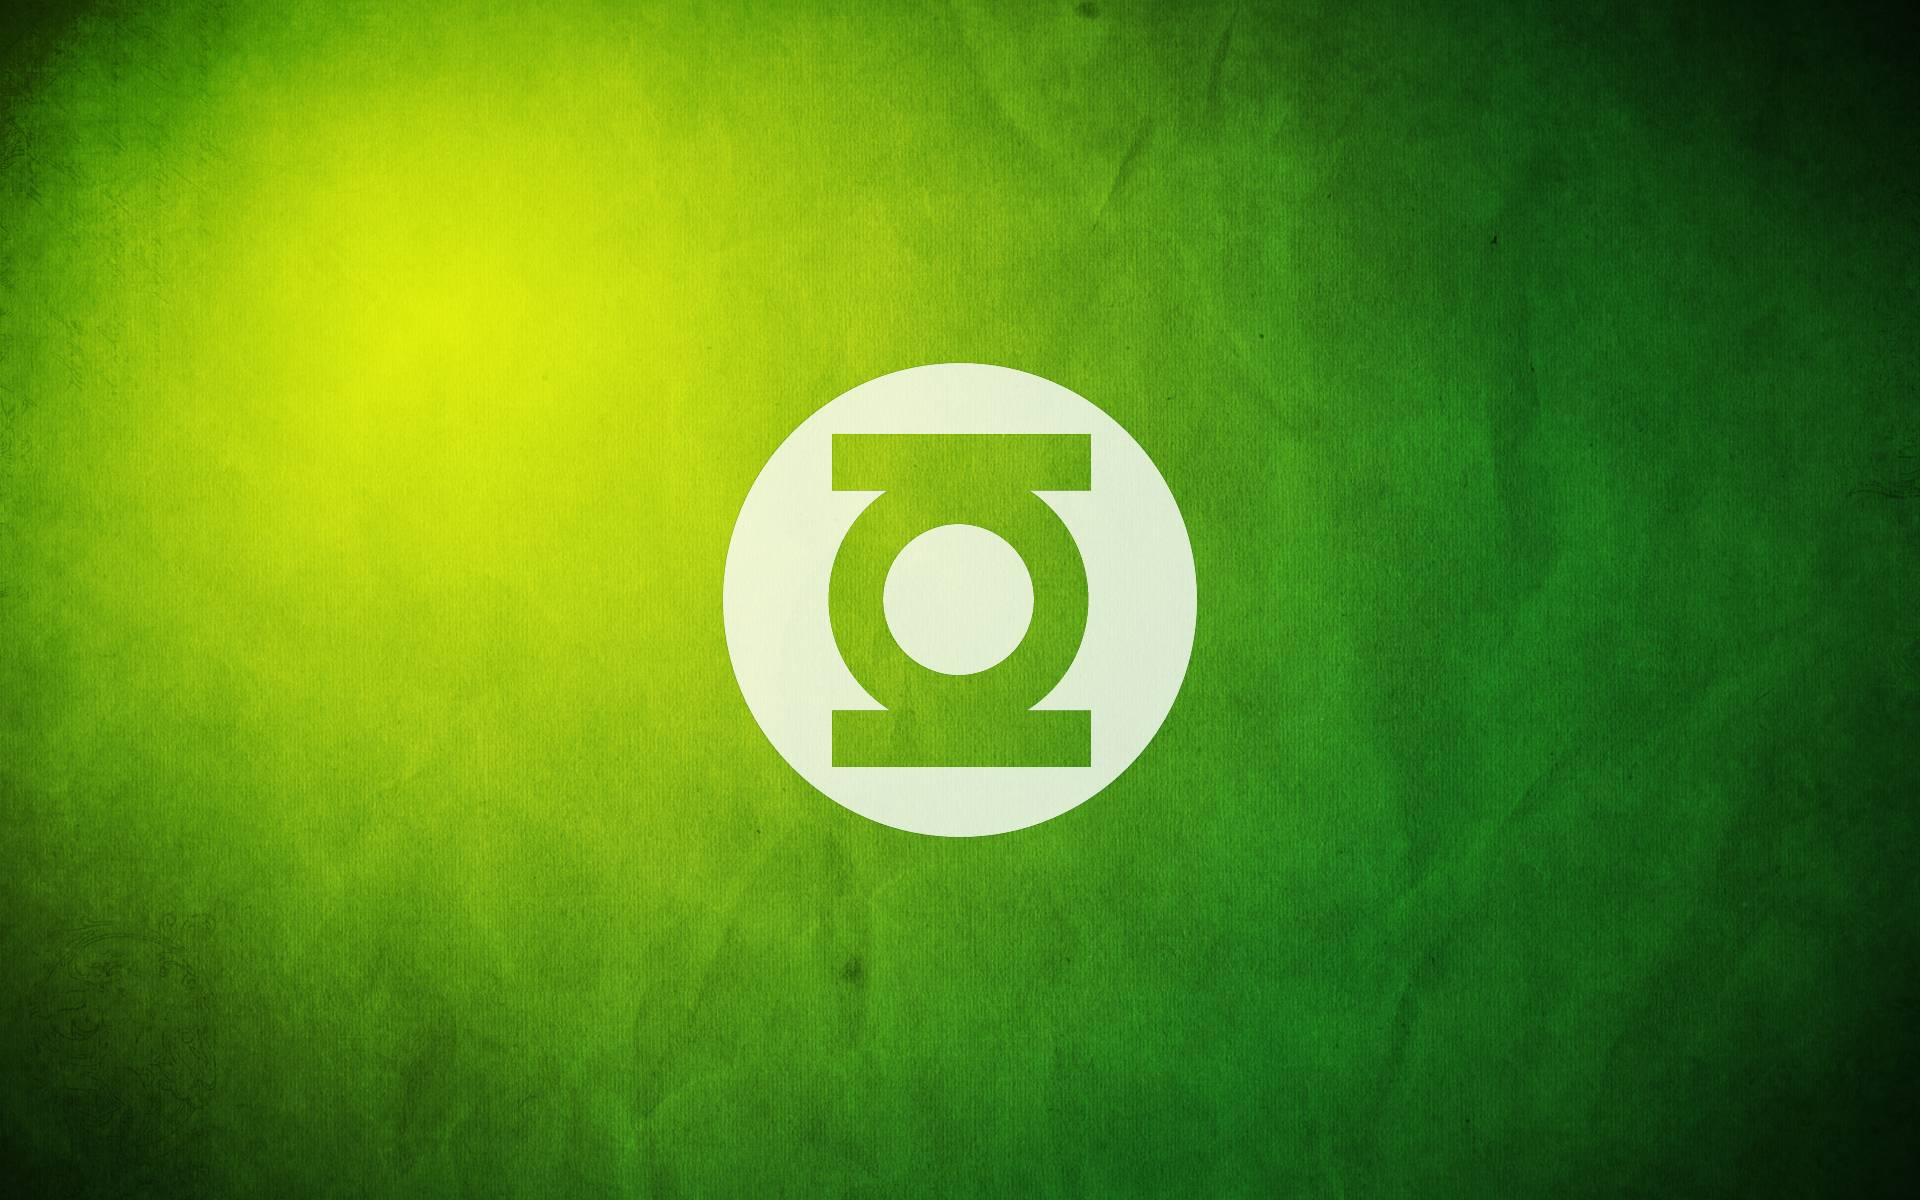 Green Lantern Logo Wallpapers 1920x1200